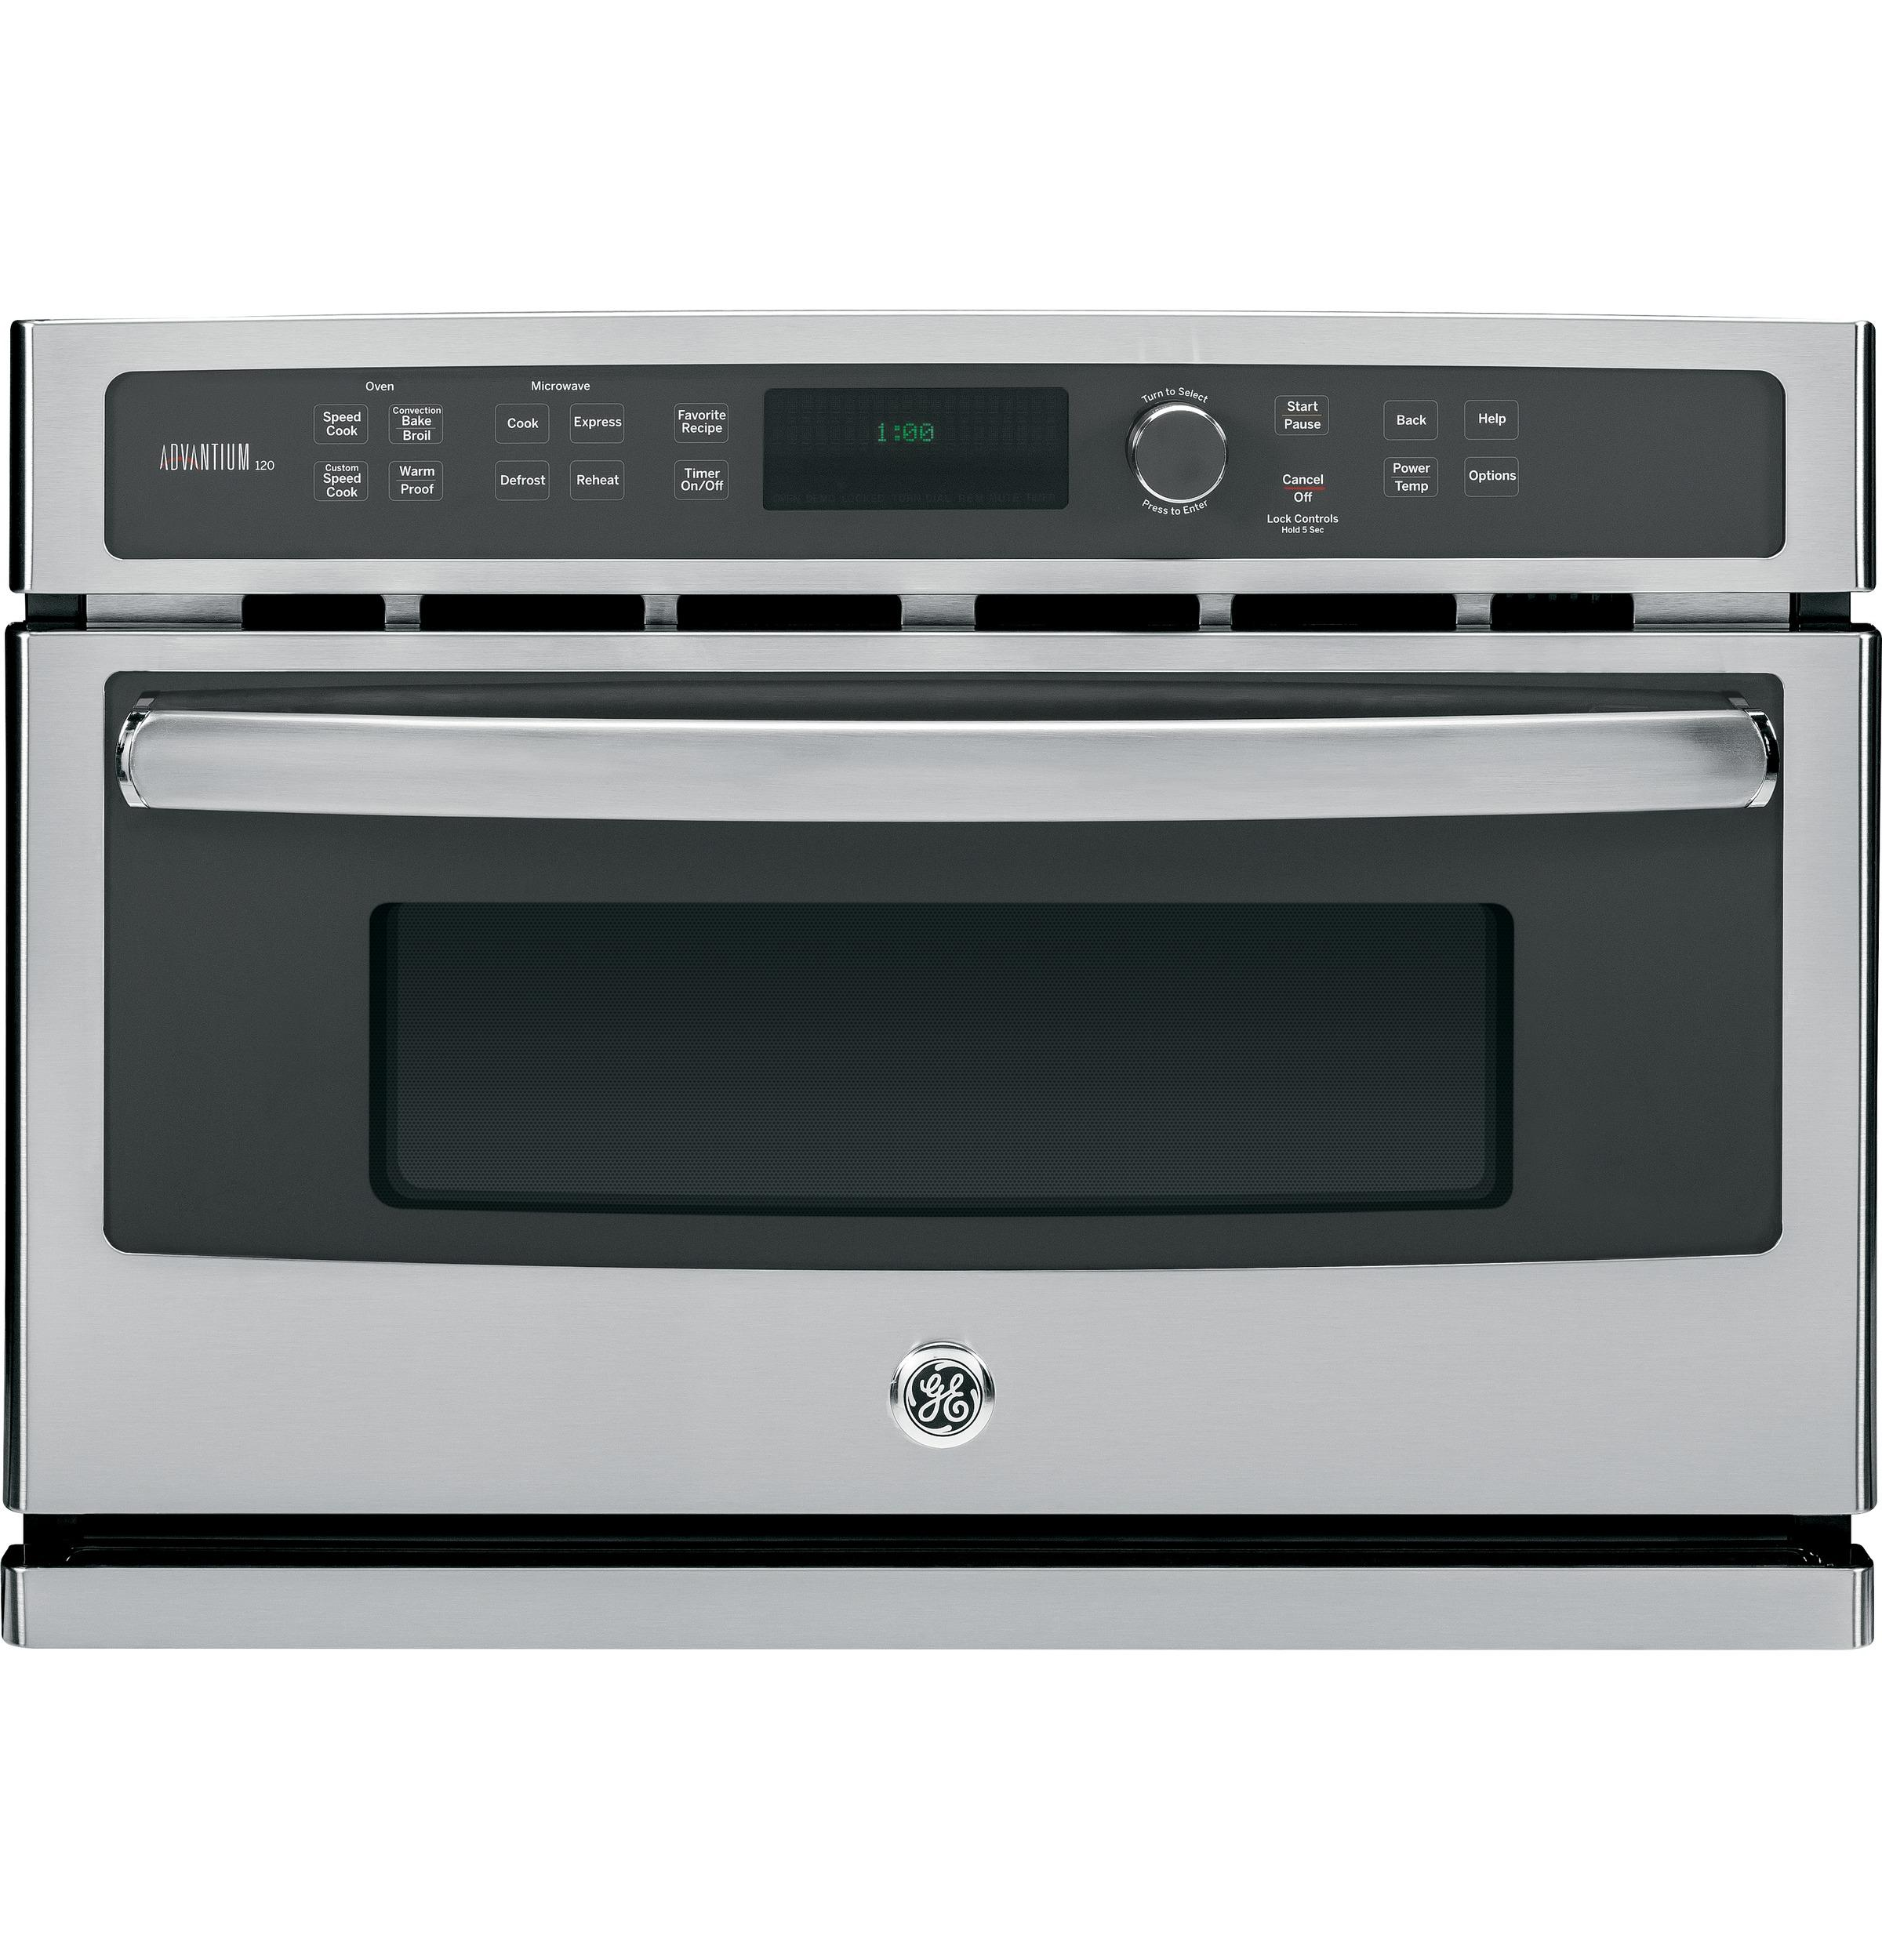 Electric Wall Oven 27 in. Electric Wall Oven by GE Appliances at Furniture and ApplianceMart